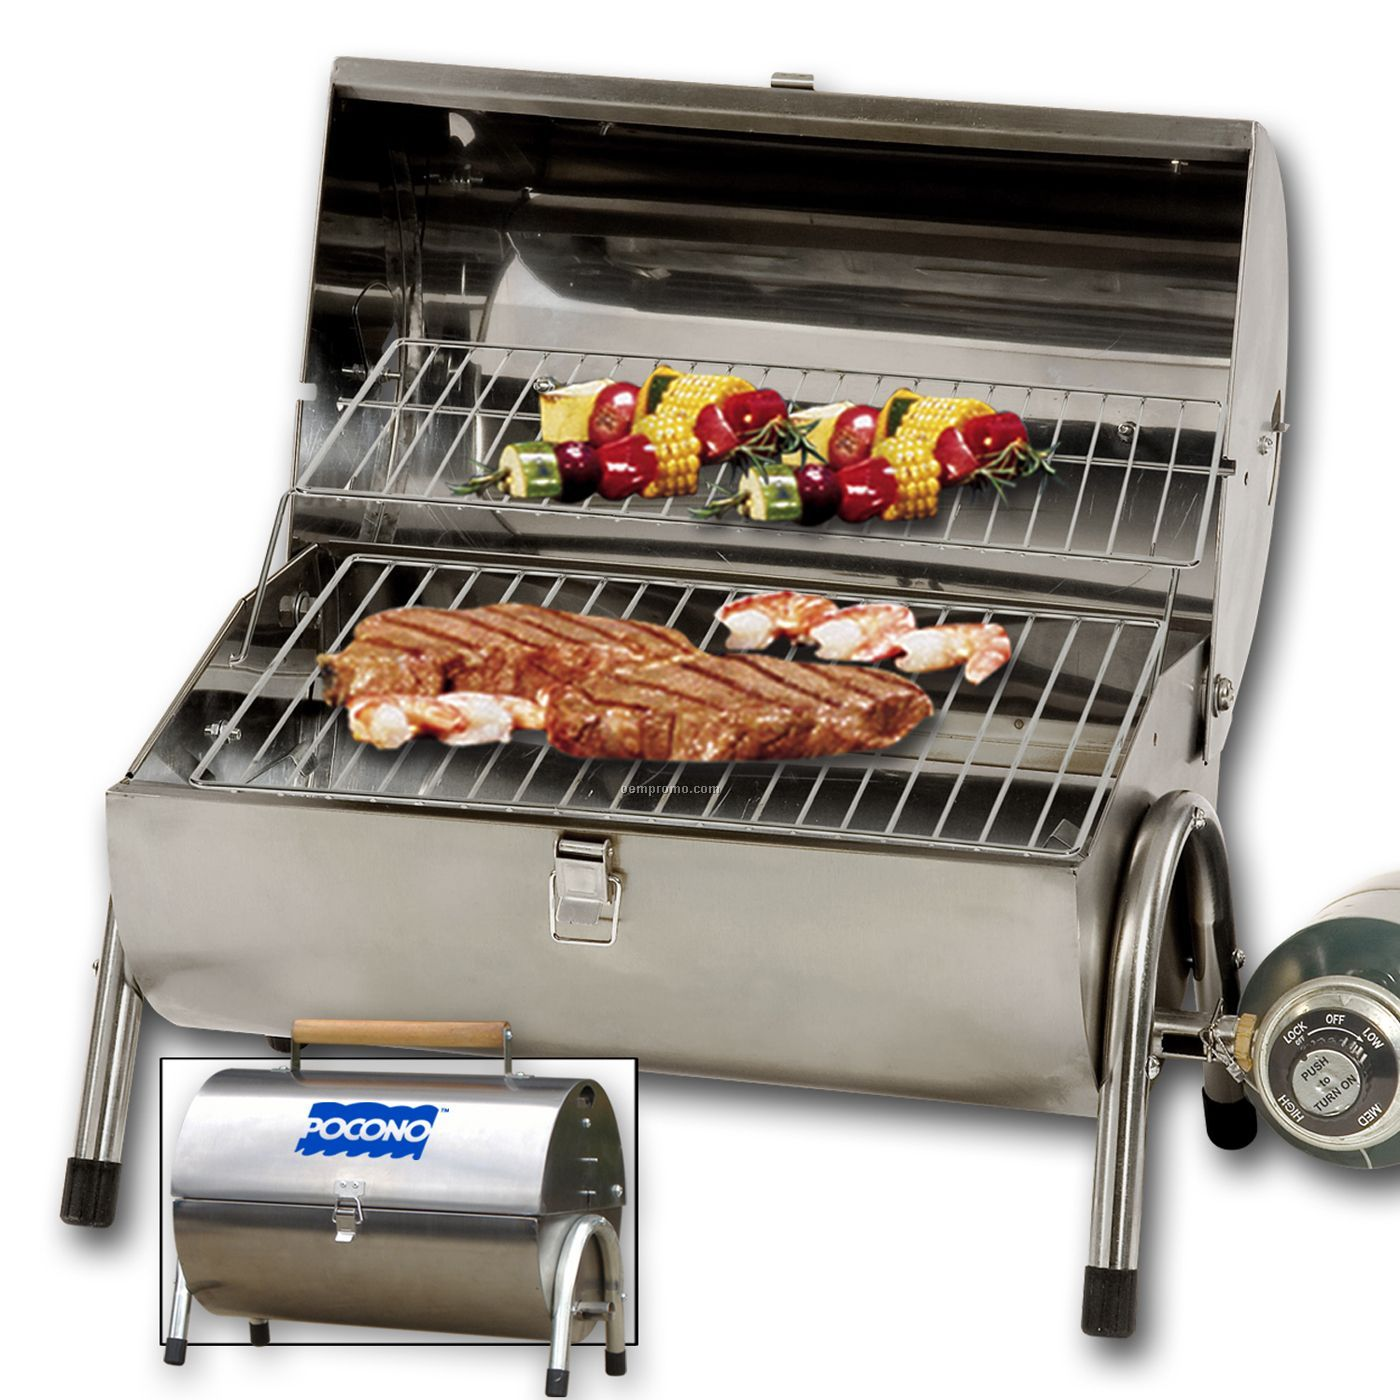 Stansport Stainless Steel Propane Bbq Grill China